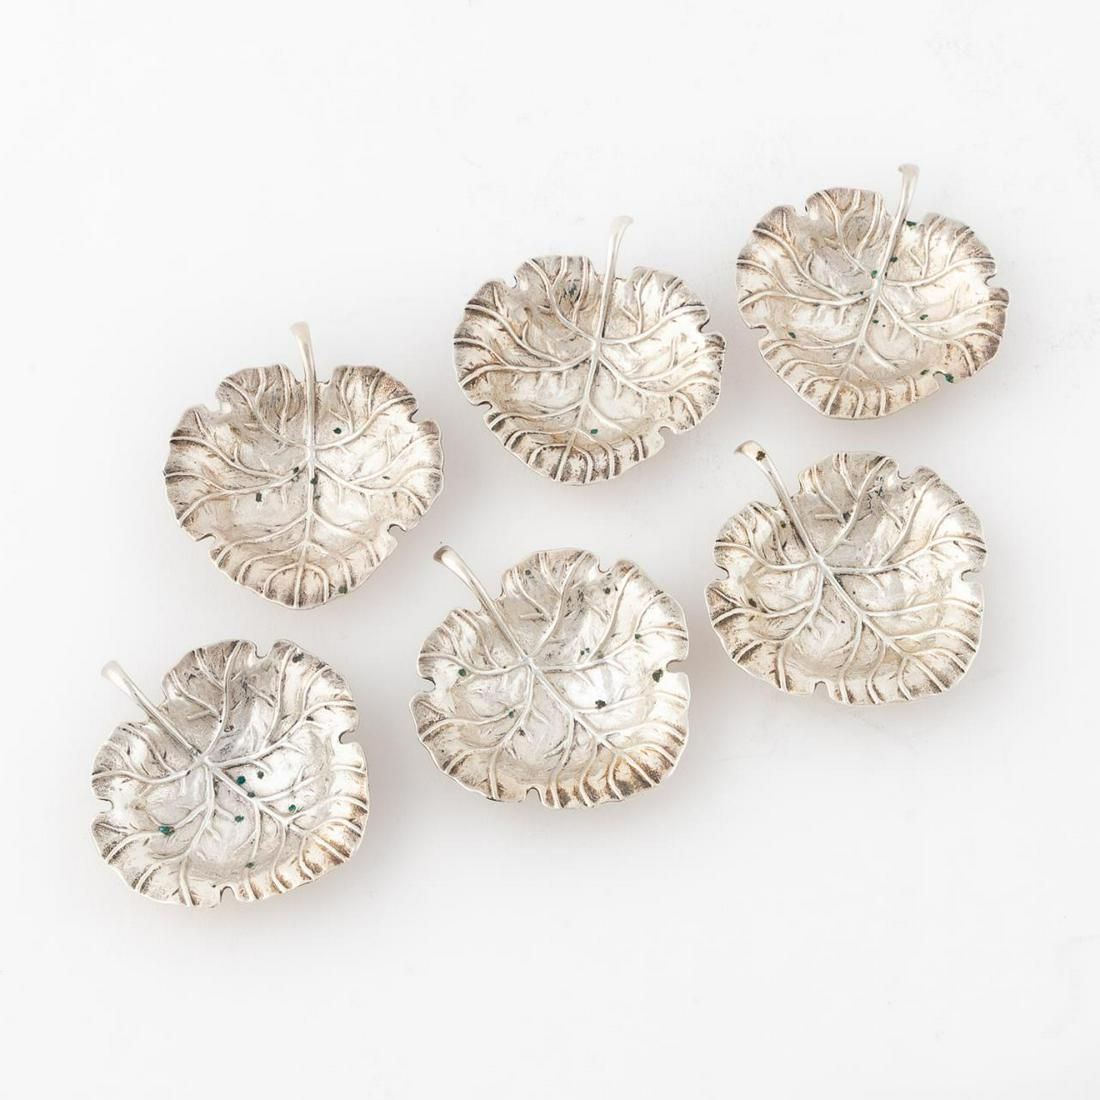 6 PC STERLING LEAF FORM NUT DISHES, UDALL & BALLOU